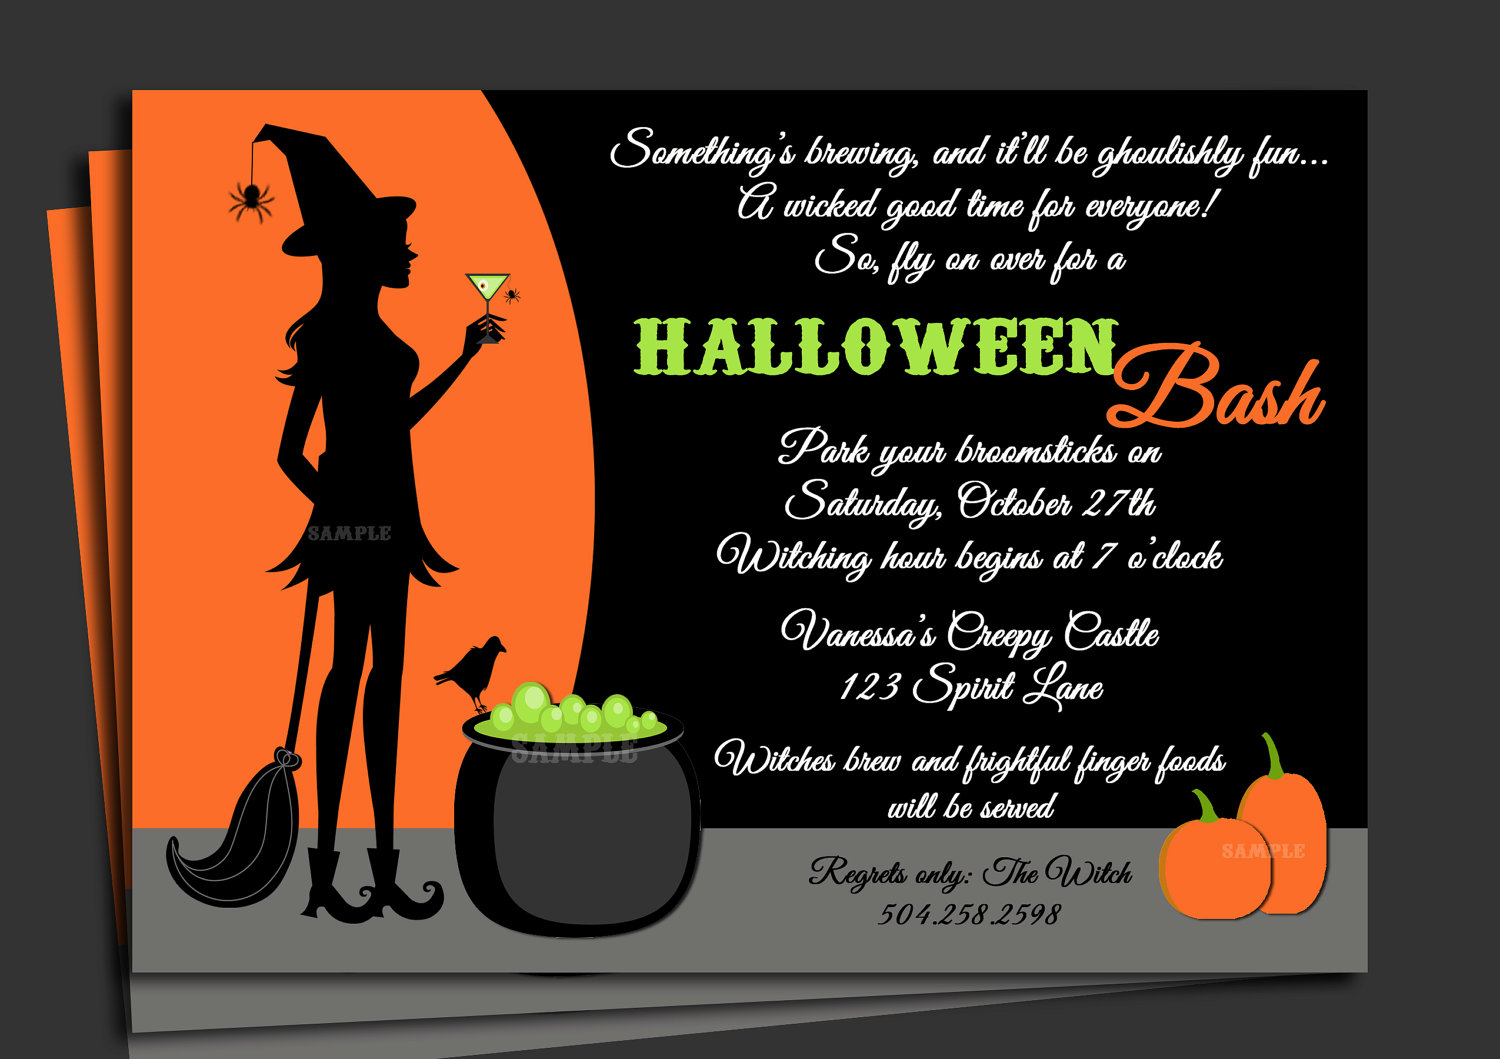 Halloween Party Invitation Poem - Mickey Mouse Invitations ...